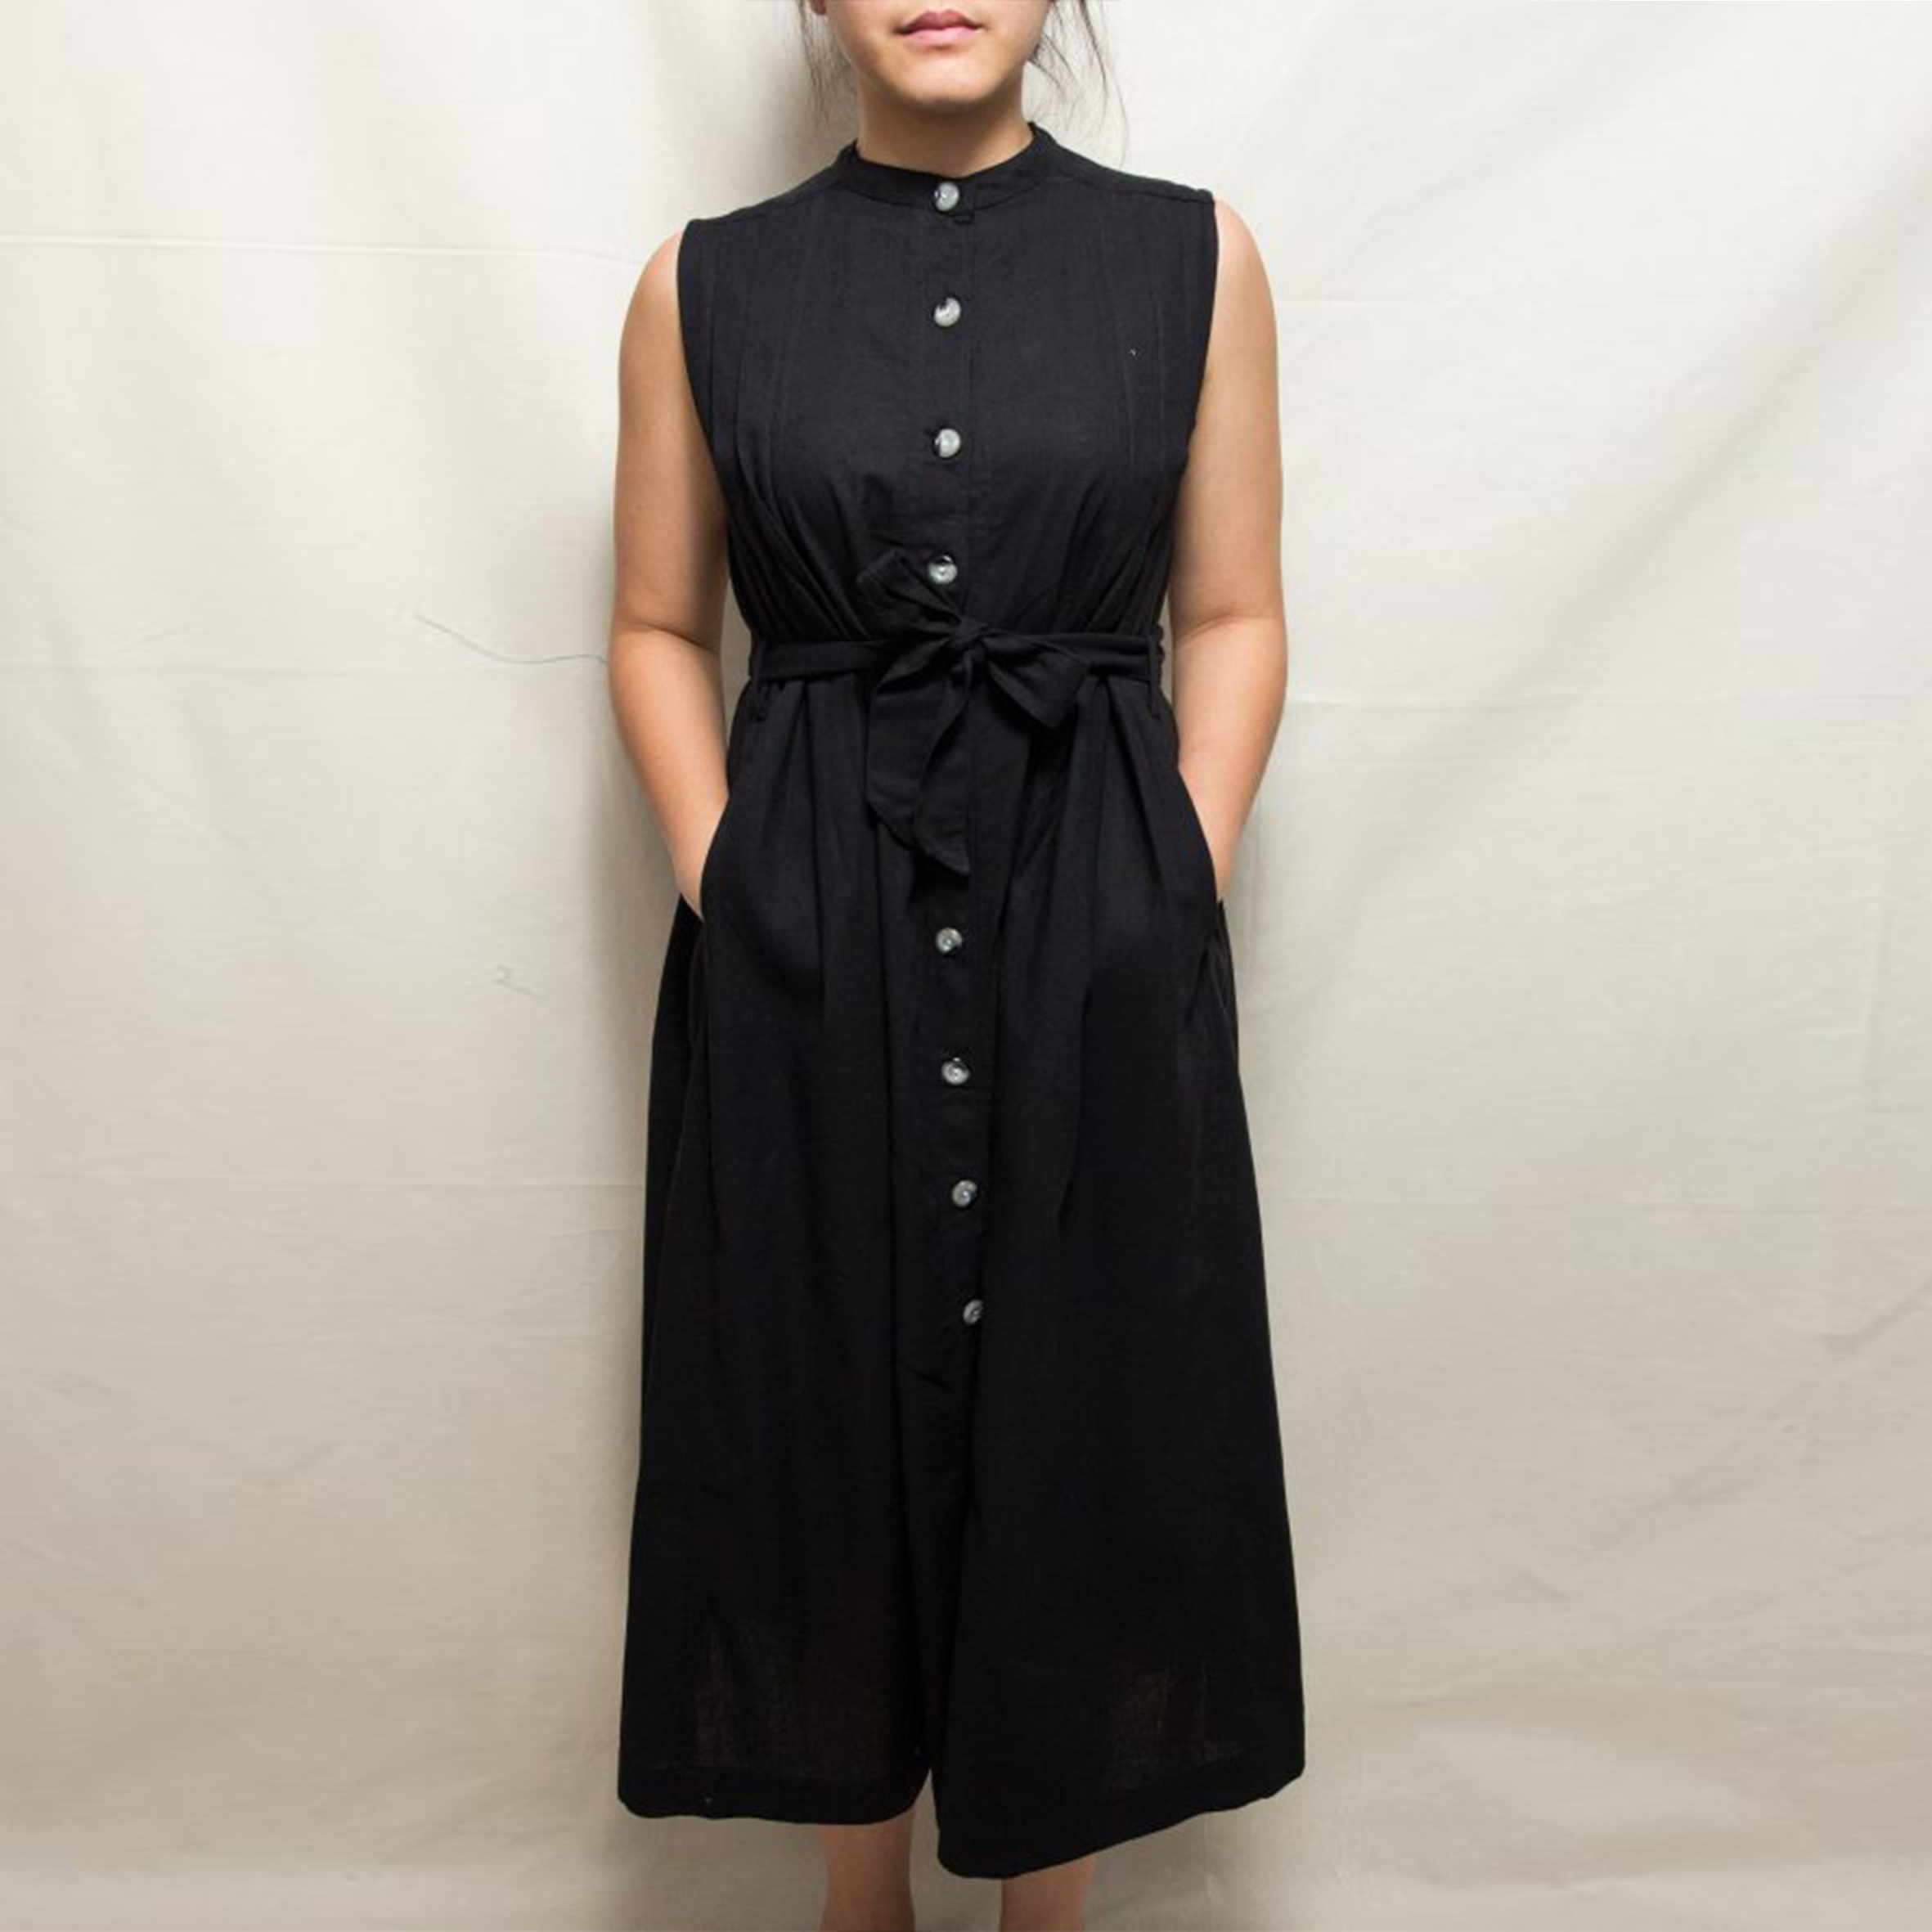 Ubud Black Dress - Baline